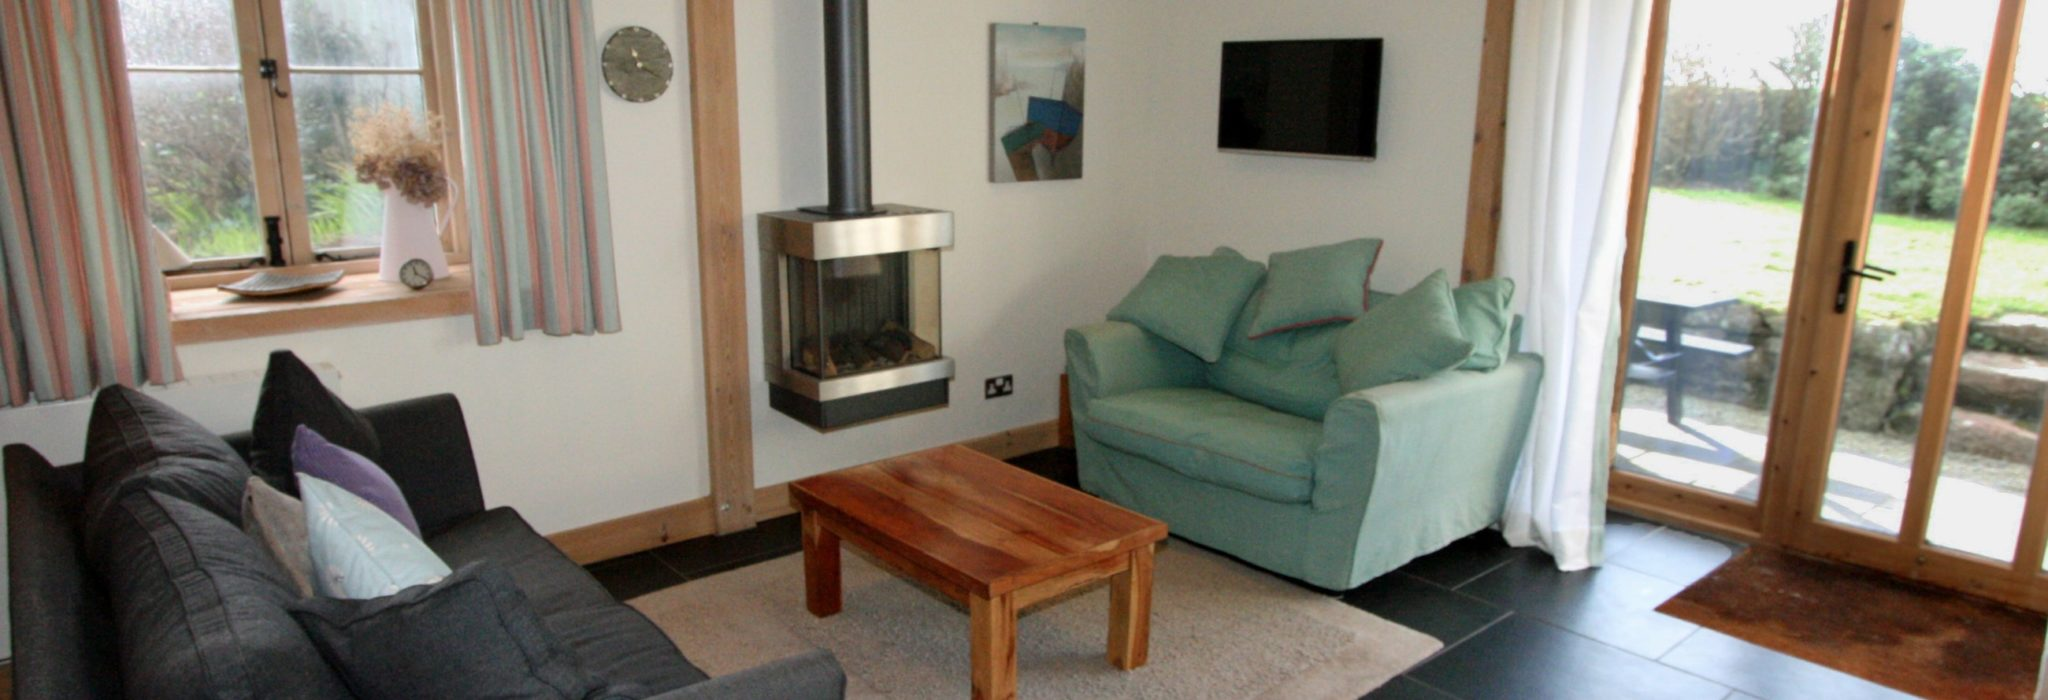 Highcliff Cottage living room - dog friendly cottage in Cornwall